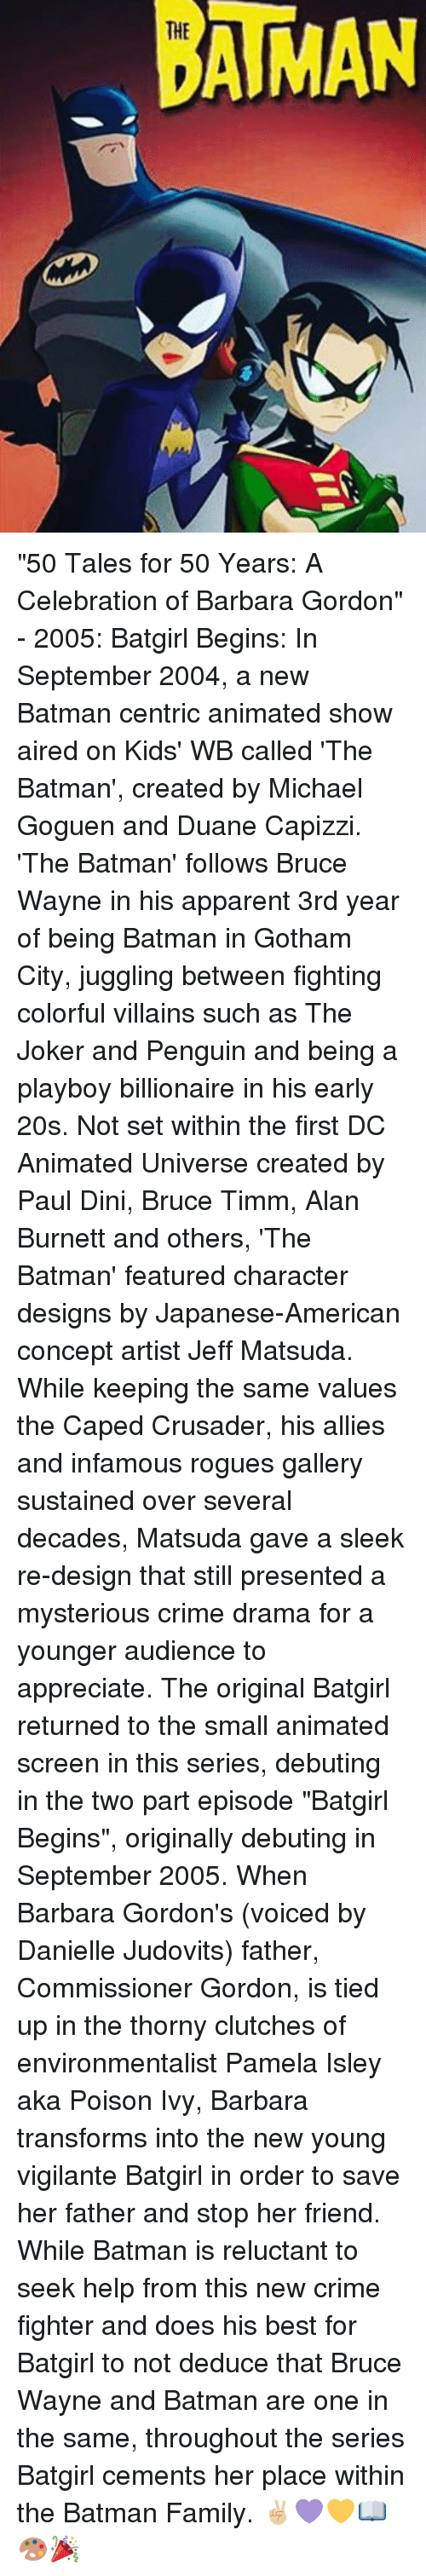 """Poison Ivy: AMAN """"50 Tales for 50 Years: A Celebration of Barbara Gordon"""" - 2005: Batgirl Begins: In September 2004, a new Batman centric animated show aired on Kids' WB called 'The Batman', created by Michael Goguen and Duane Capizzi. 'The Batman' follows Bruce Wayne in his apparent 3rd year of being Batman in Gotham City, juggling between fighting colorful villains such as The Joker and Penguin and being a playboy billionaire in his early 20s. Not set within the first DC Animated Universe created by Paul Dini, Bruce Timm, Alan Burnett and others, 'The Batman' featured character designs by Japanese-American concept artist Jeff Matsuda. While keeping the same values the Caped Crusader, his allies and infamous rogues gallery sustained over several decades, Matsuda gave a sleek re-design that still presented a mysterious crime drama for a younger audience to appreciate. The original Batgirl returned to the small animated screen in this series, debuting in the two part episode """"Batgirl Begins"""", originally debuting in September 2005. When Barbara Gordon's (voiced by Danielle Judovits) father, Commissioner Gordon, is tied up in the thorny clutches of environmentalist Pamela Isley aka Poison Ivy, Barbara transforms into the new young vigilante Batgirl in order to save her father and stop her friend. While Batman is reluctant to seek help from this new crime fighter and does his best for Batgirl to not deduce that Bruce Wayne and Batman are one in the same, throughout the series Batgirl cements her place within the Batman Family. ✌🏼💜💛📖🎨🎉"""